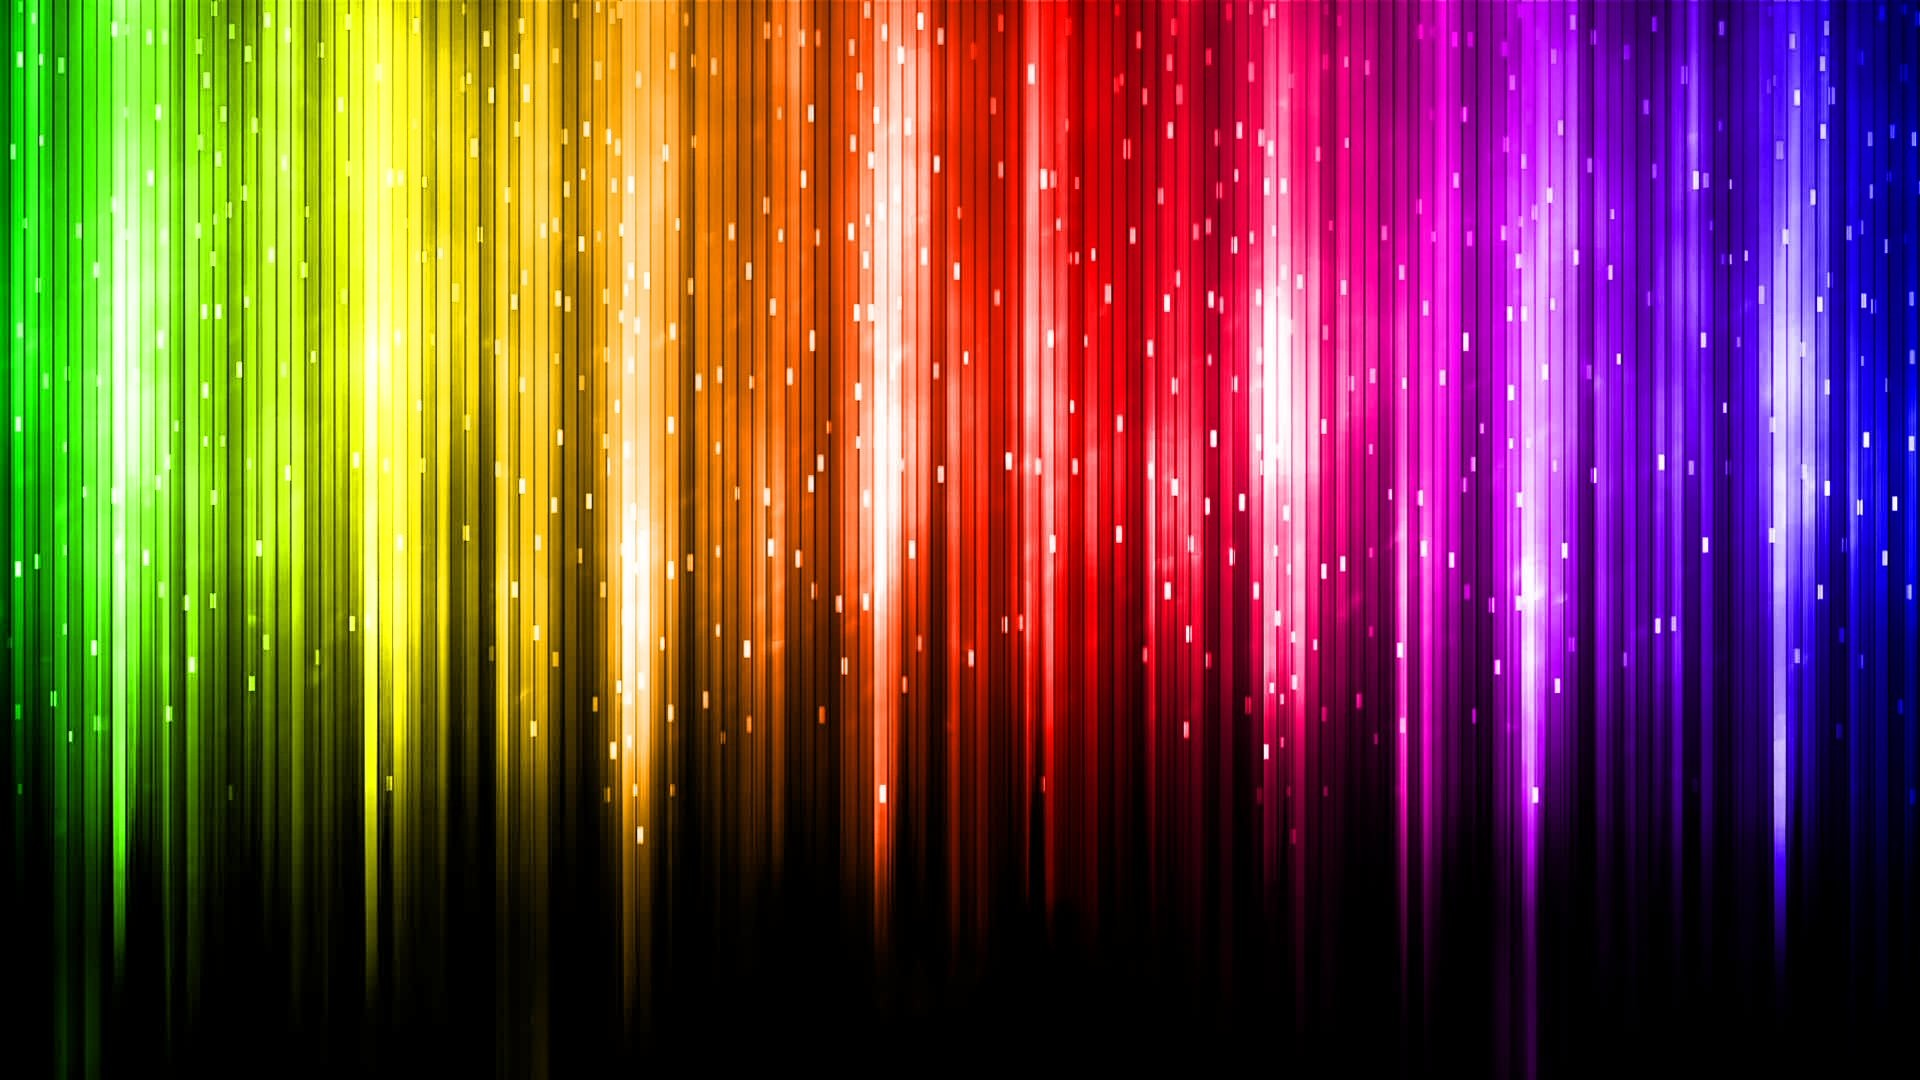 72 rainbow backgrounds download free amazing full hd